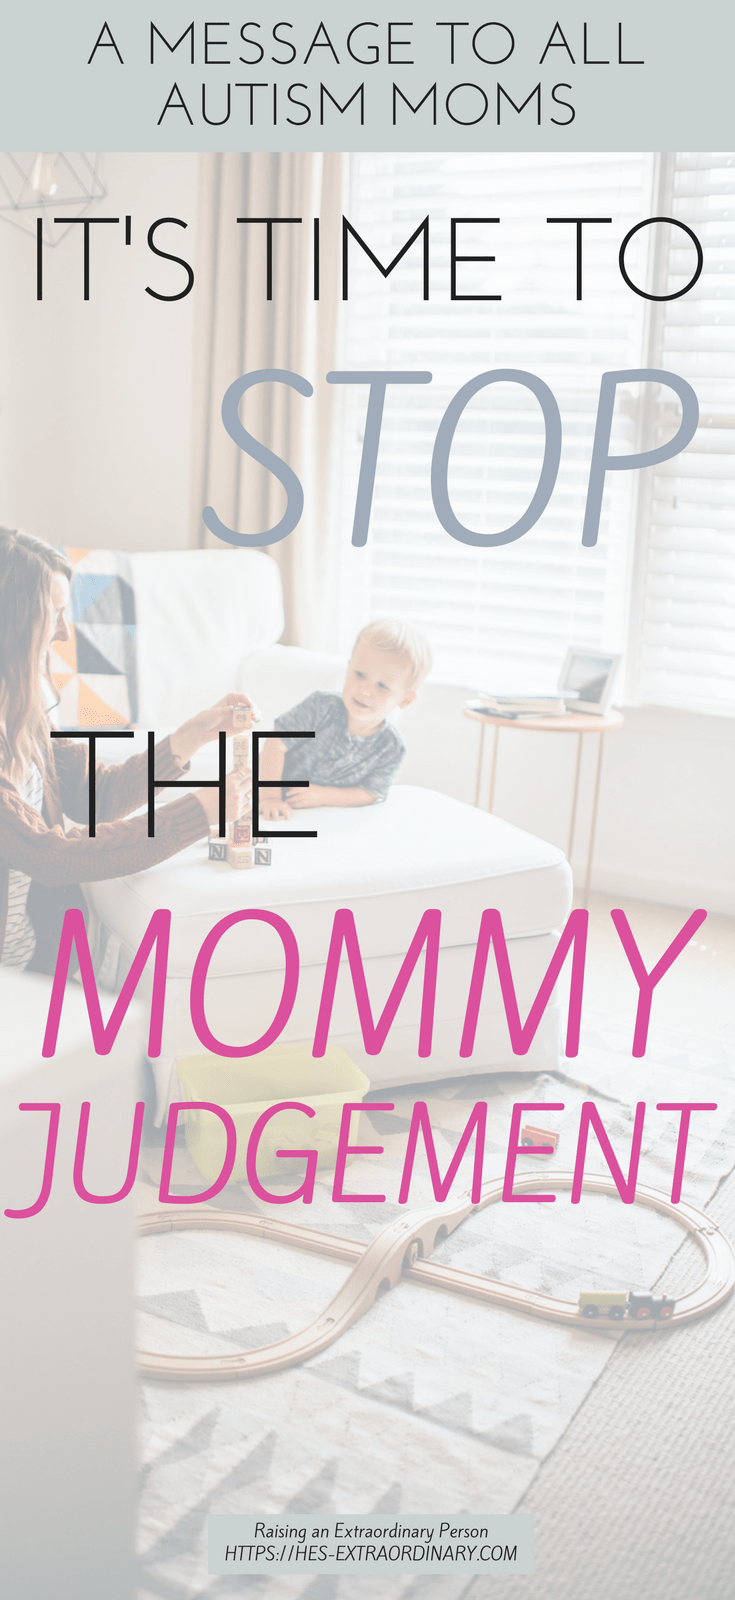 Autism Moms - It's time to stop the mommy judging